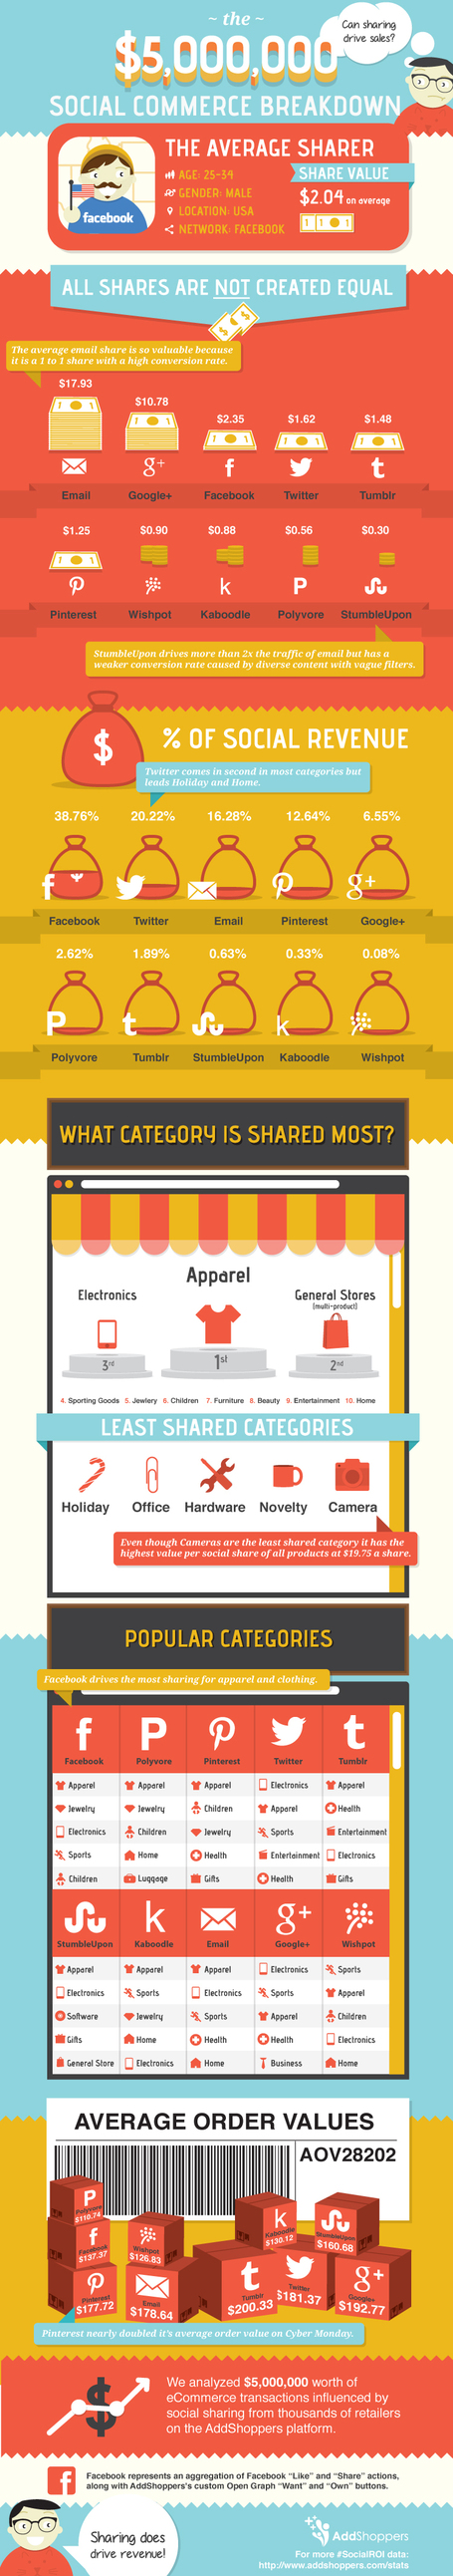 Infographic: Men drive e-commerce; G+ share 5x as valuable as Facebook? | Keep Up With The Web | Scoop.it